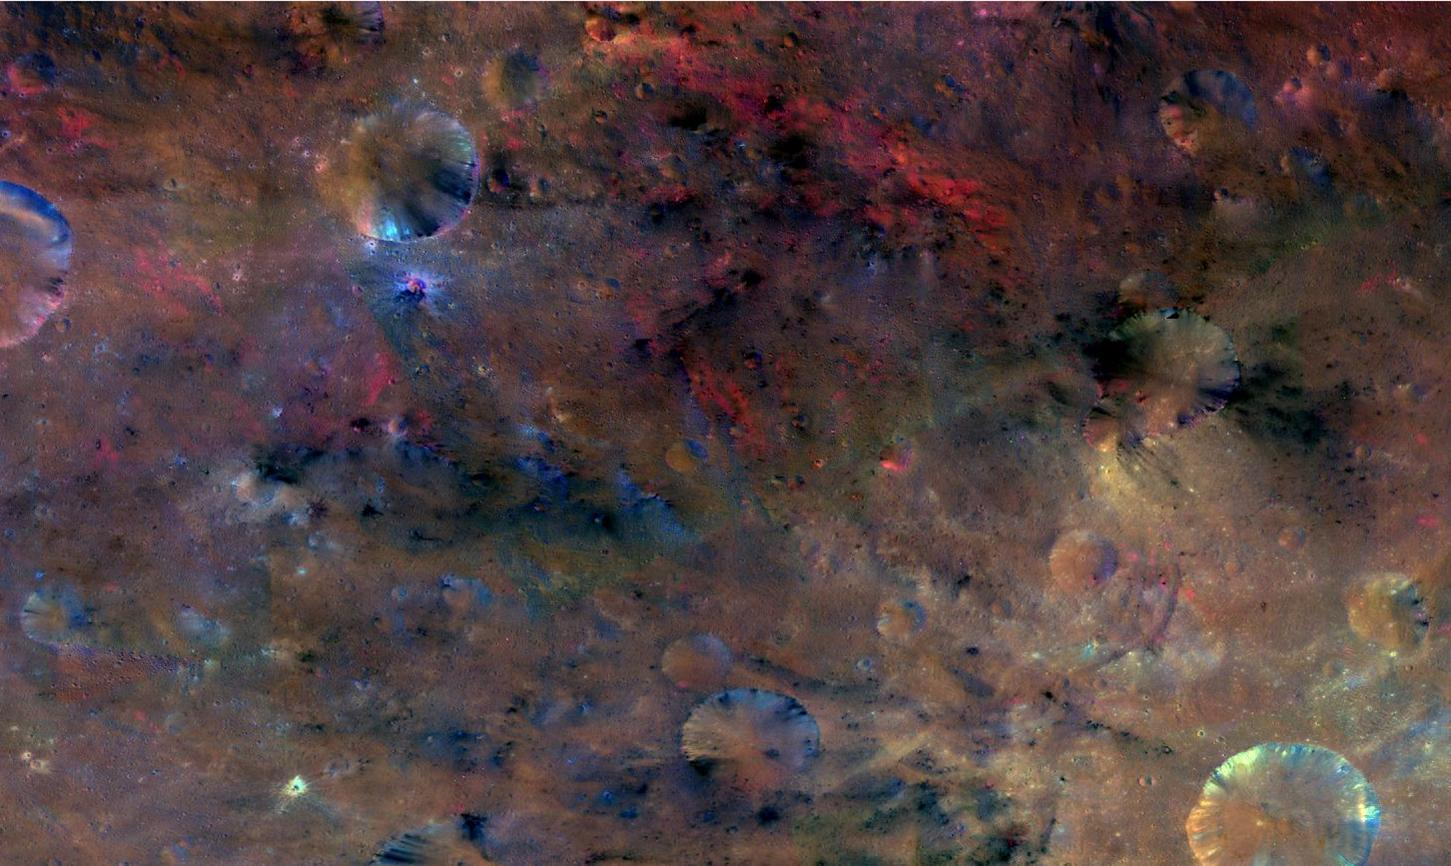 This colorful image from NASA's Dawn mission shows material northwest of the crater Sextilia on the giant asteroid Vesta. Sextilia, located around 30 degrees south latitude, is at the bottom right of this image.